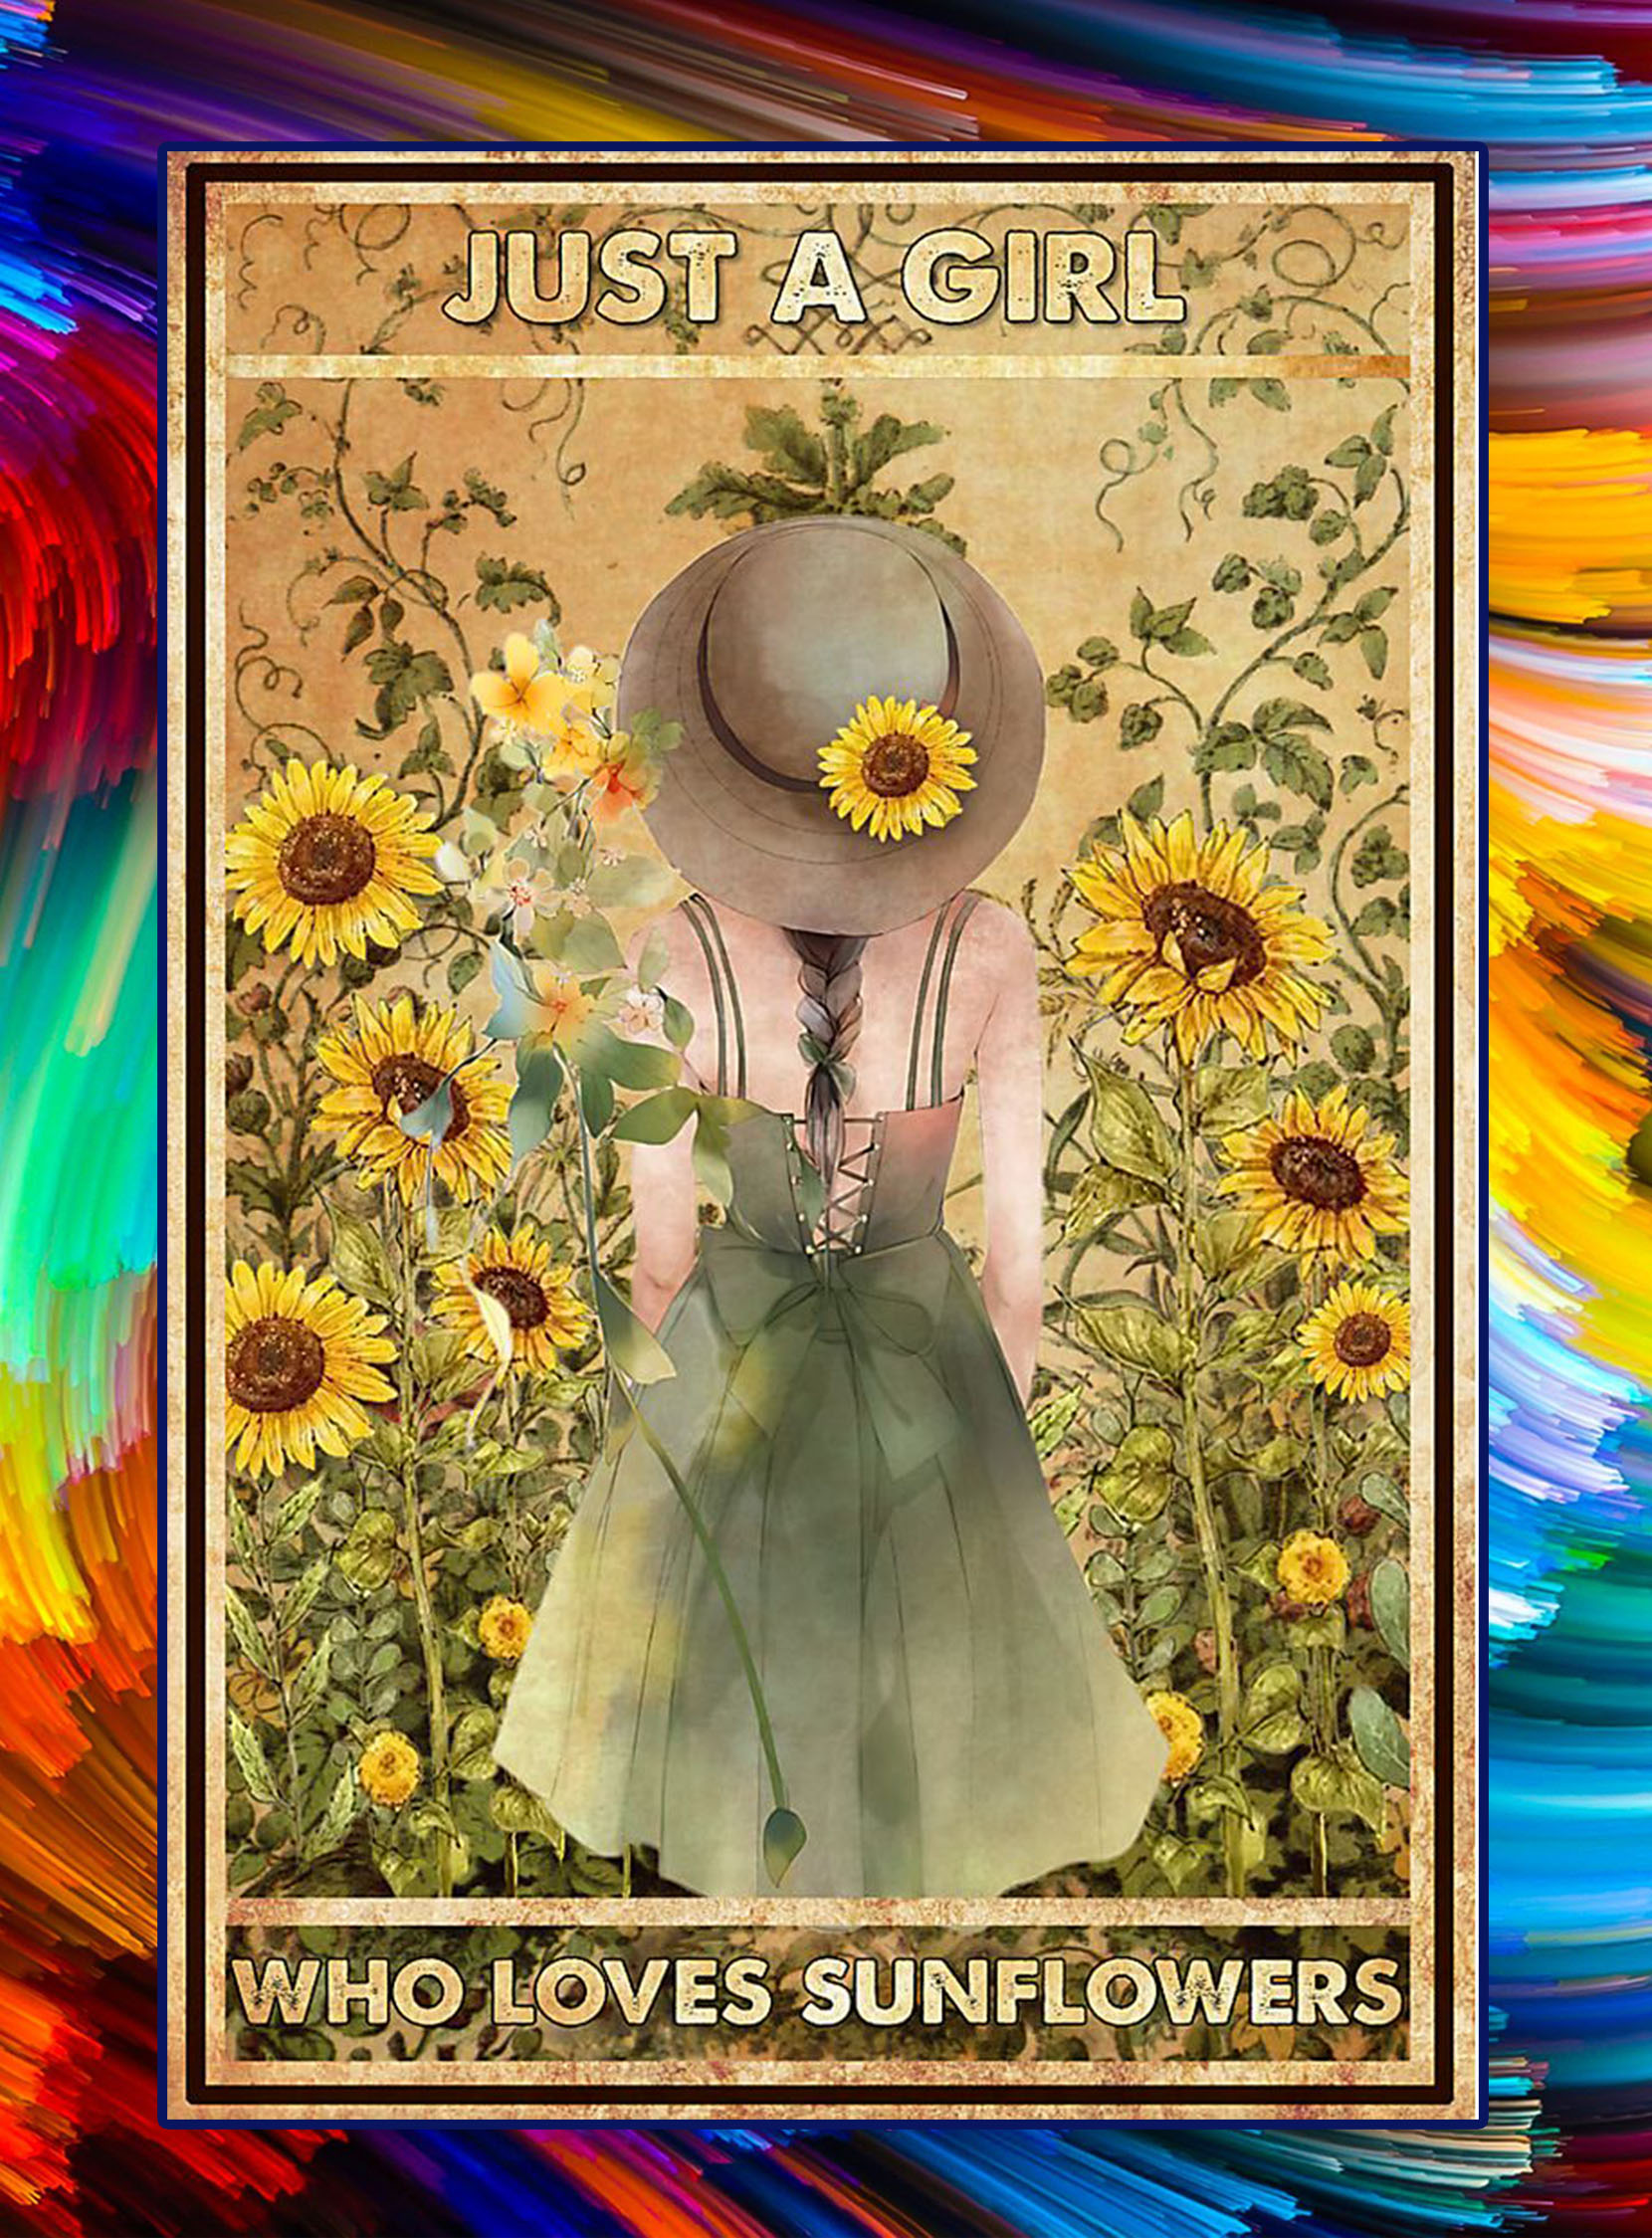 Just a girl who loves sunflowers poster - A3